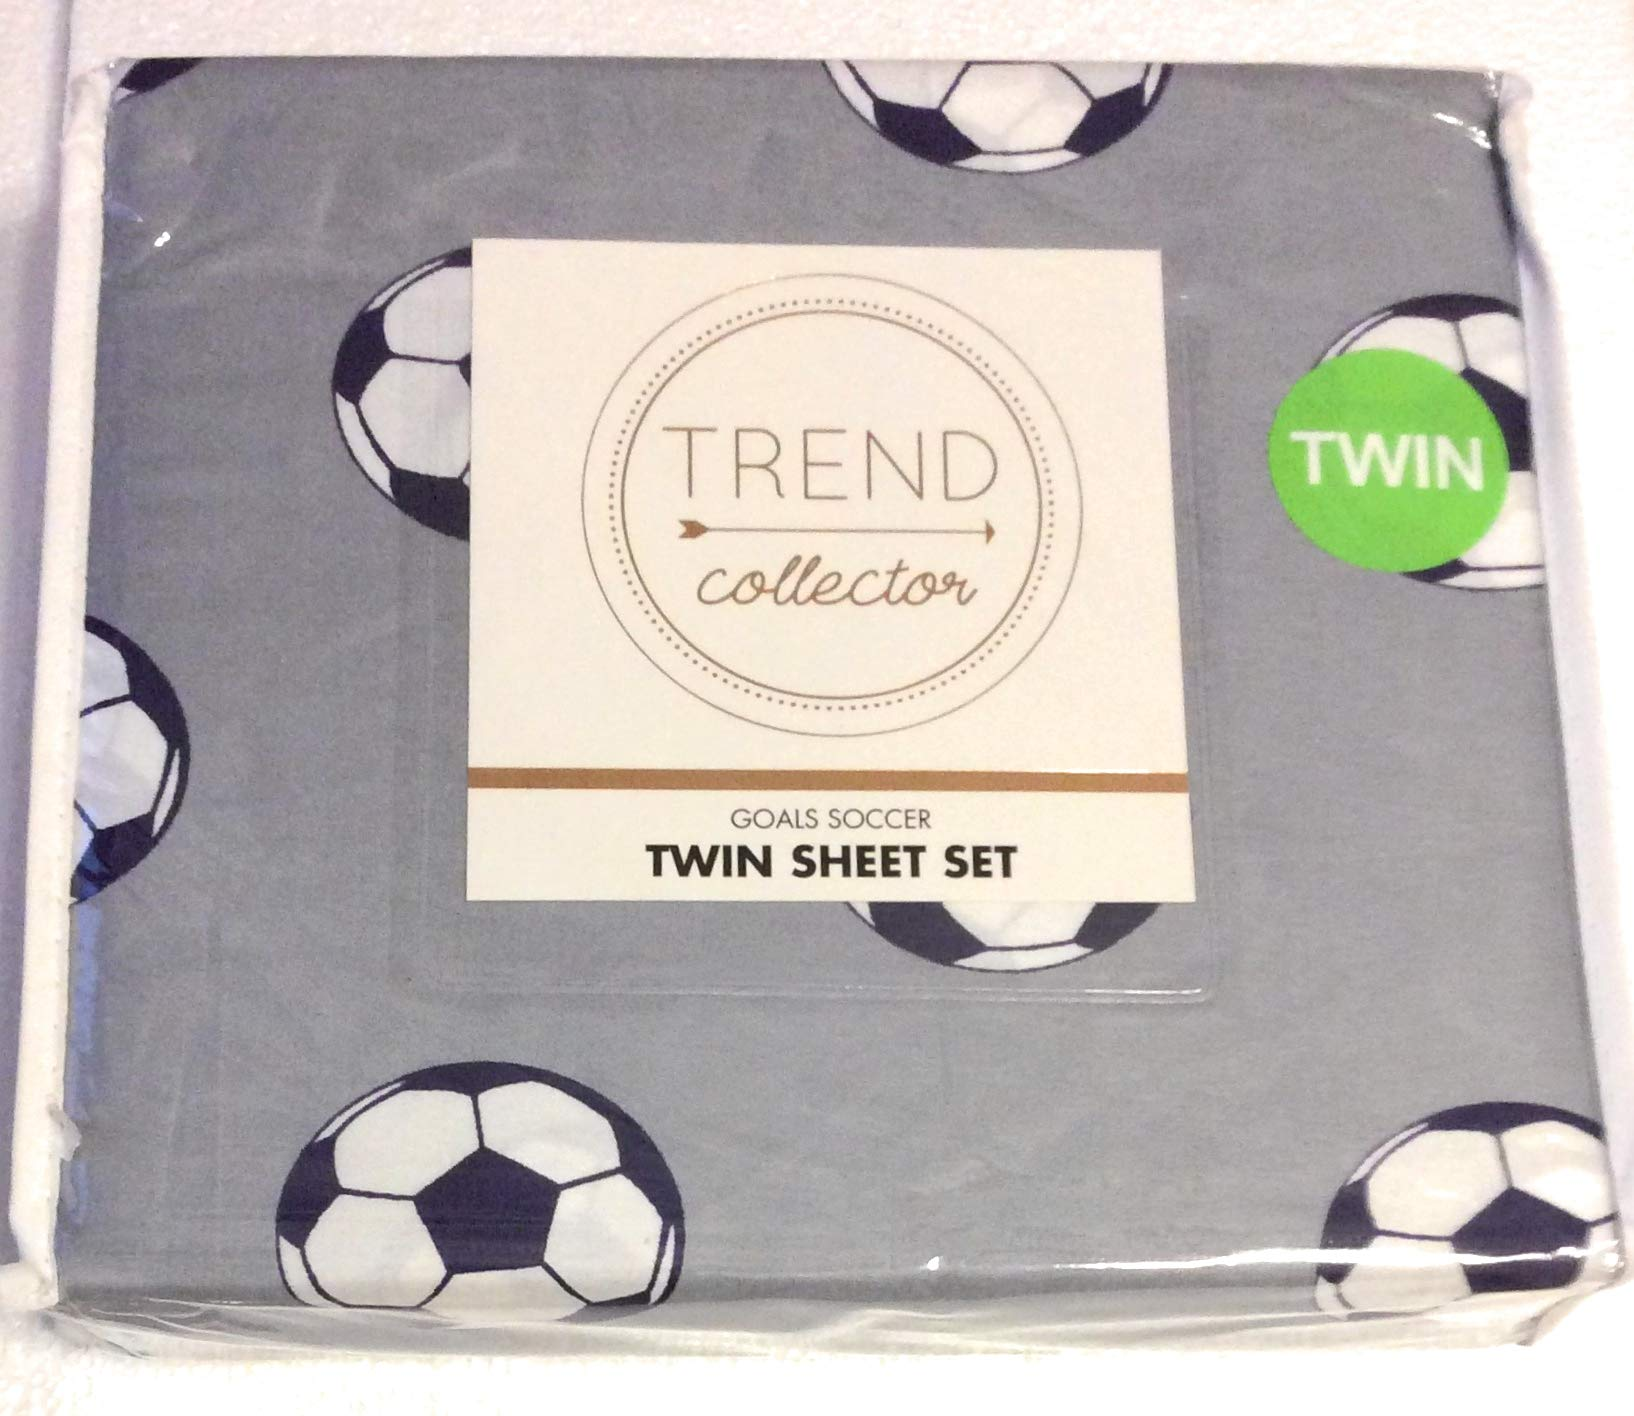 Trend Collection Charming Novelty Sheet Set for Kids in Lightweight Microfiber (Goals Soccer, Twin)